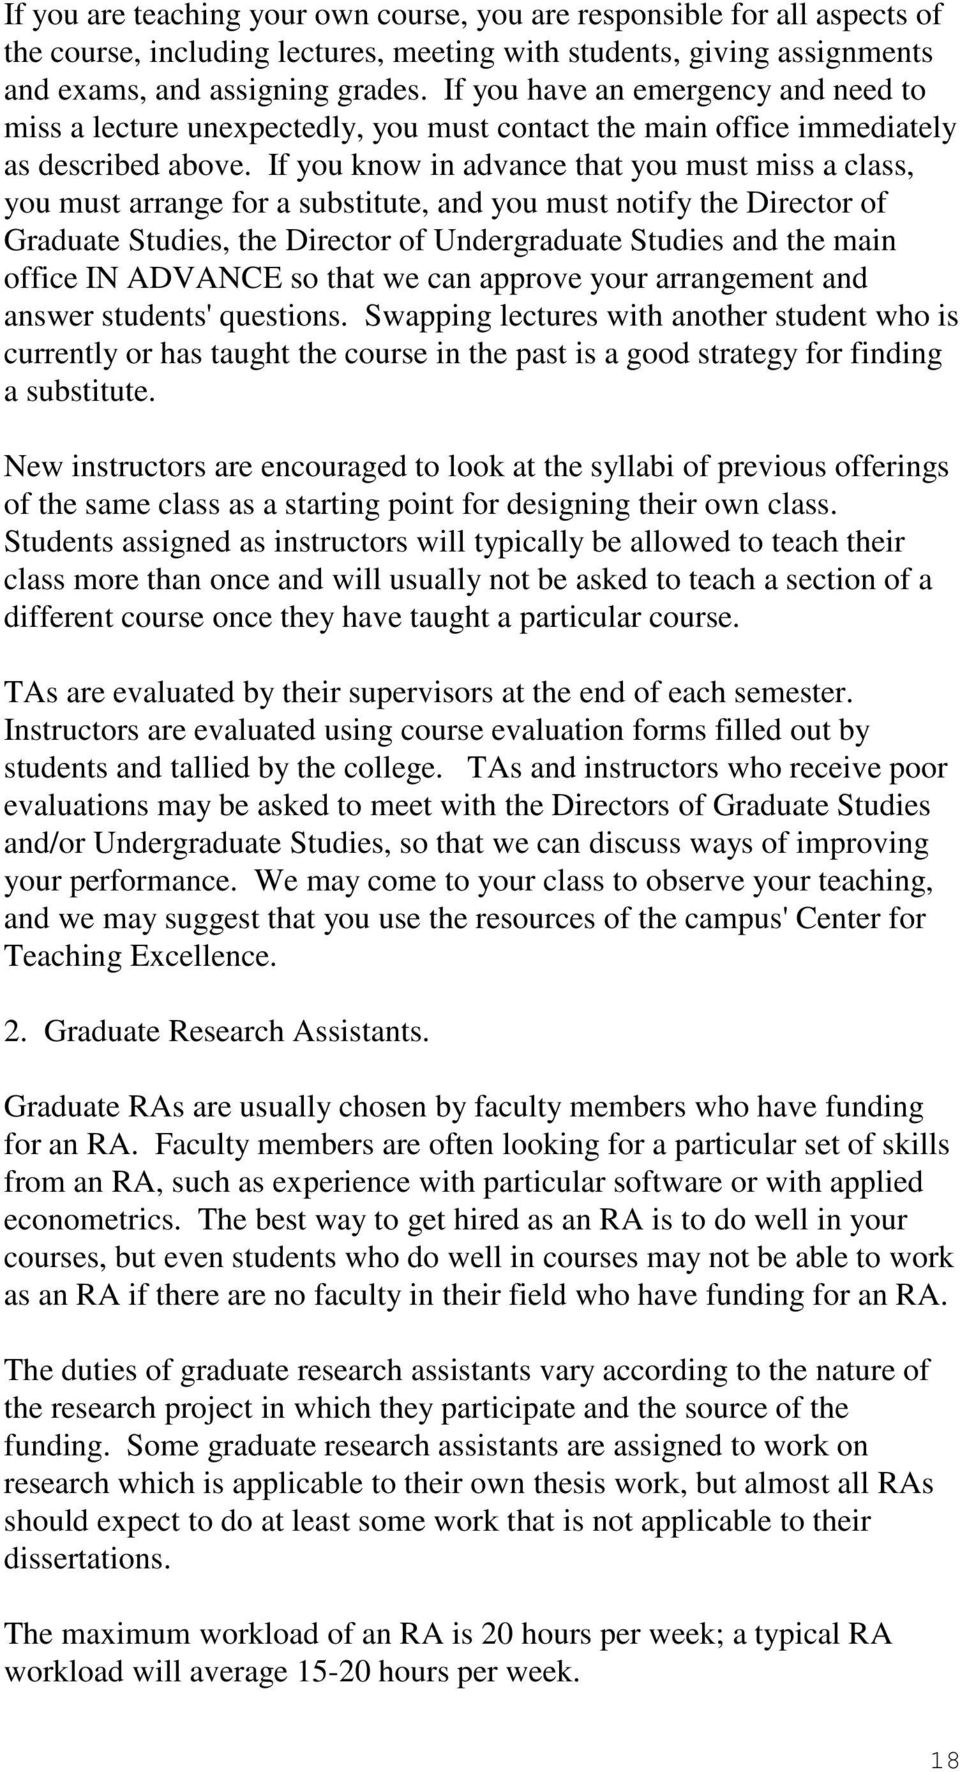 If you know in advance that you must miss a class, you must arrange for a substitute, and you must notify the Director of Graduate Studies, the Director of Undergraduate Studies and the main office